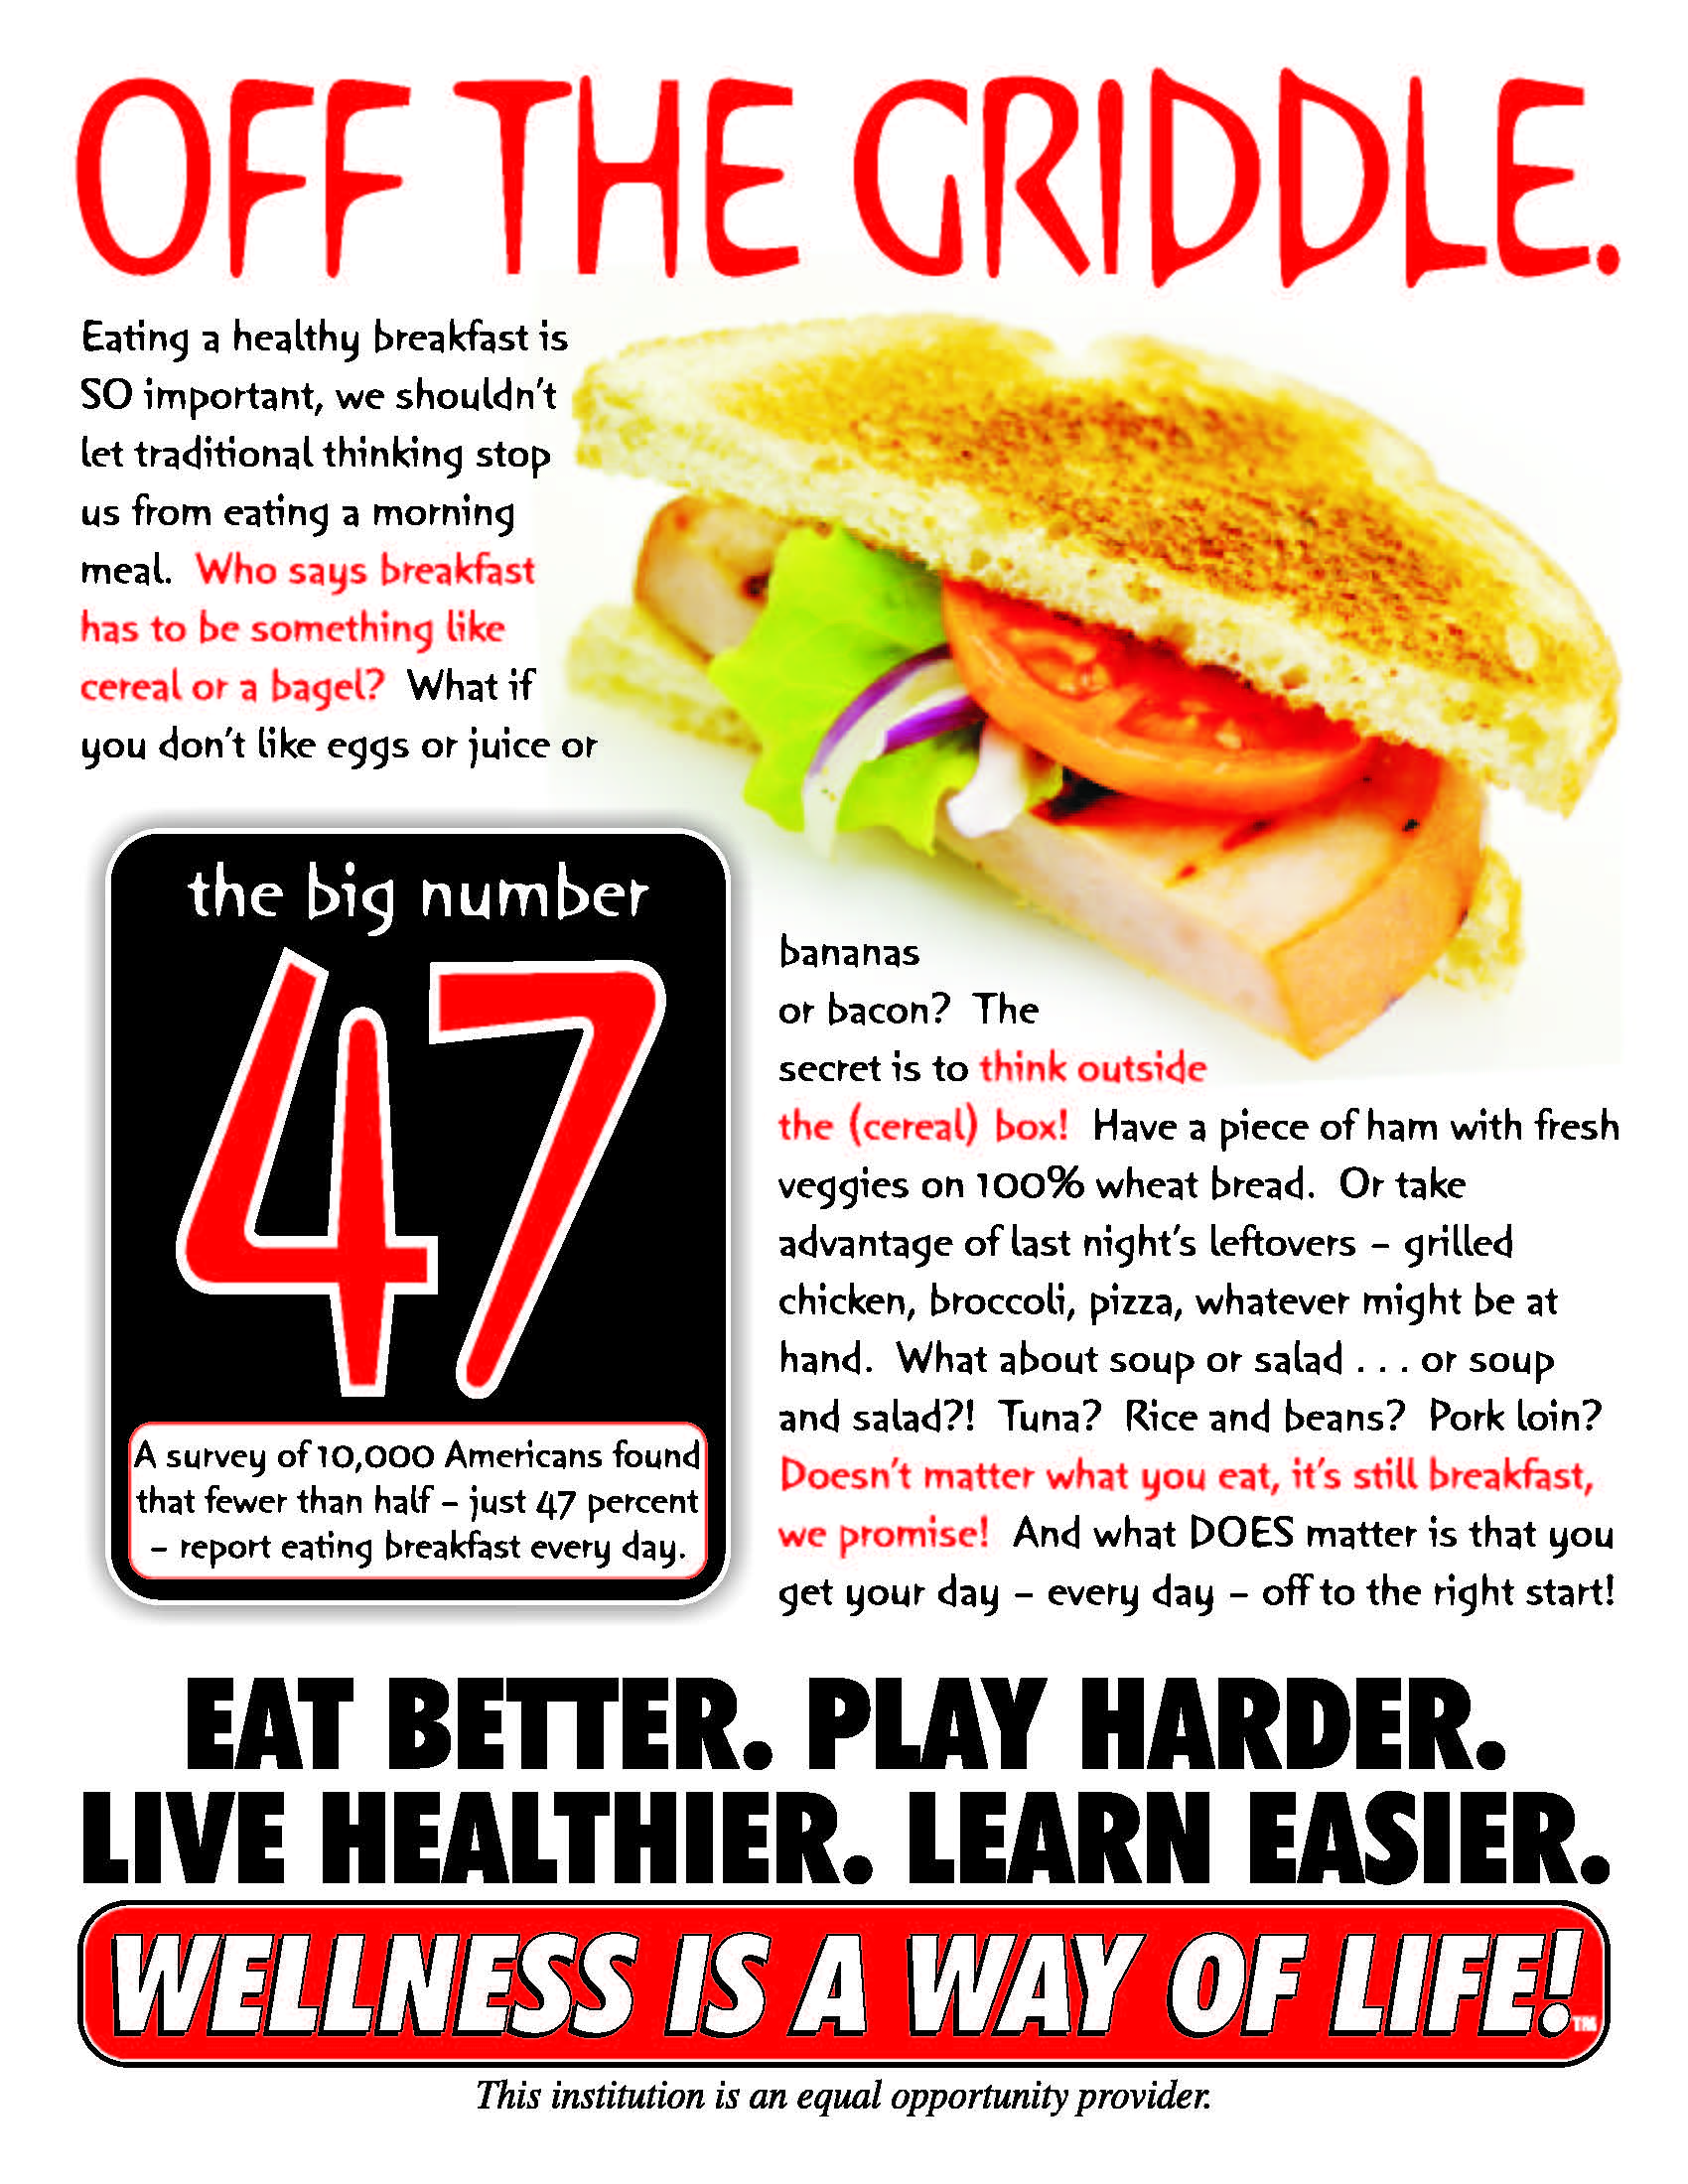 Image of grilled breakfast sandwich to support article about the benefits of eating a healthy breakfast.